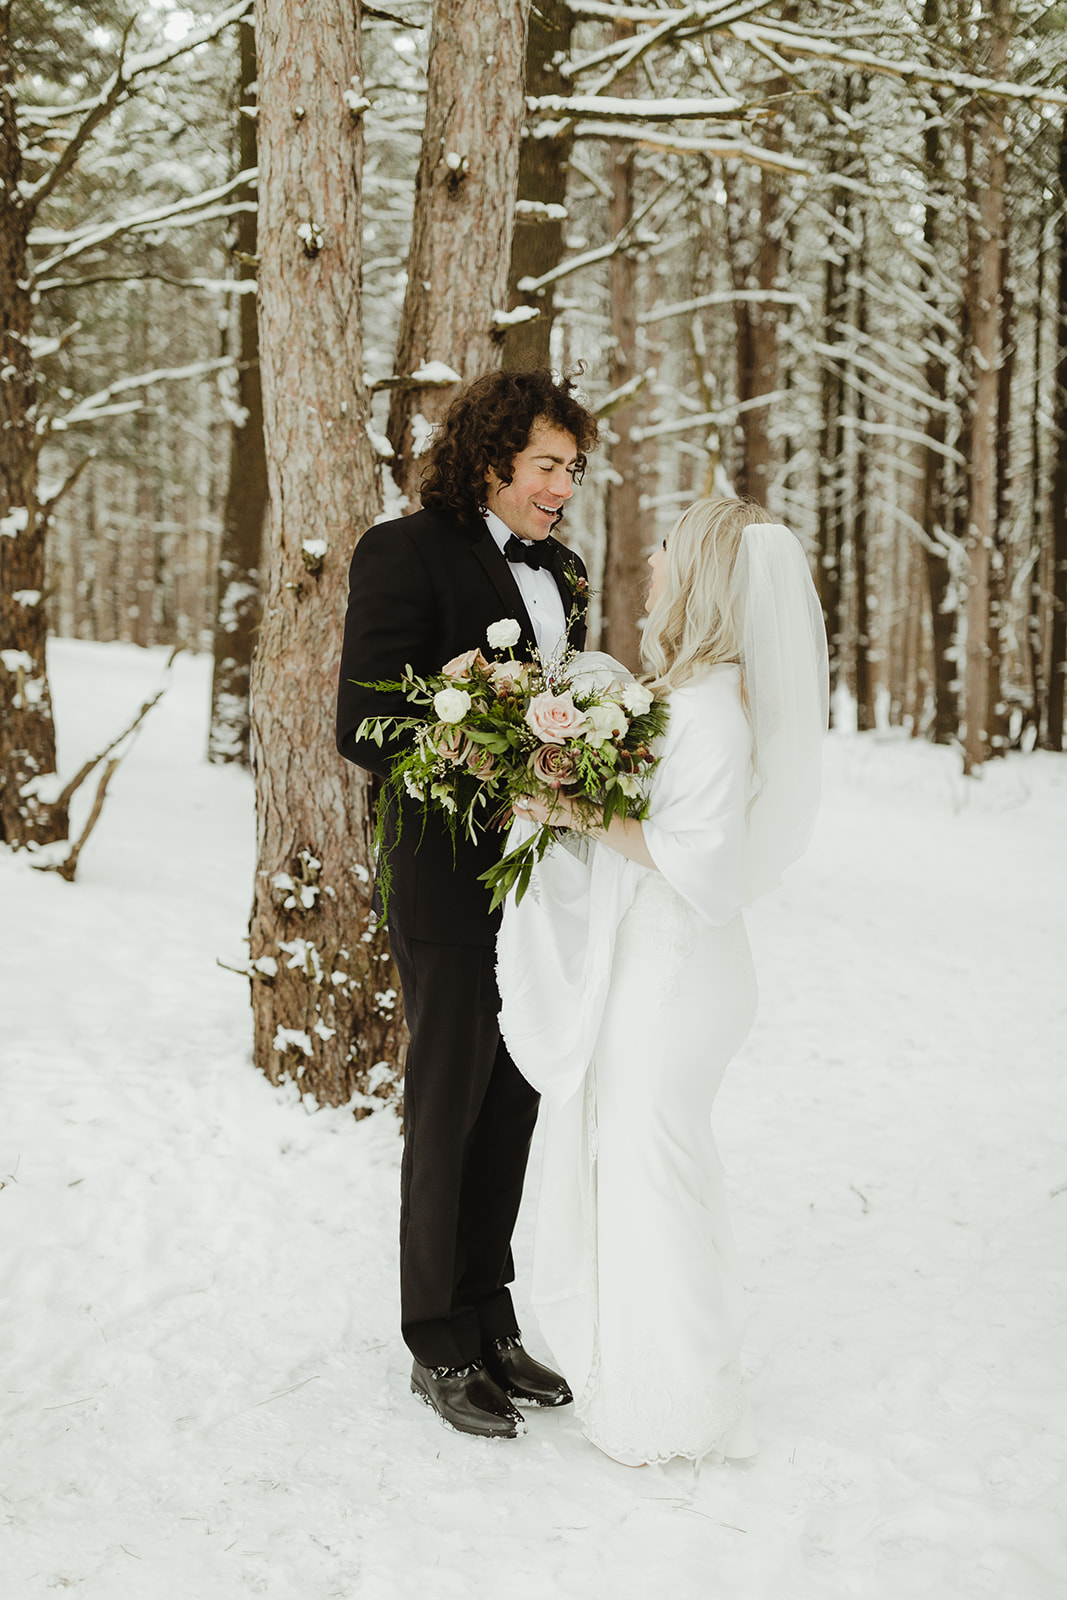 A bride and groom smiling in the snowy woods after their wedding